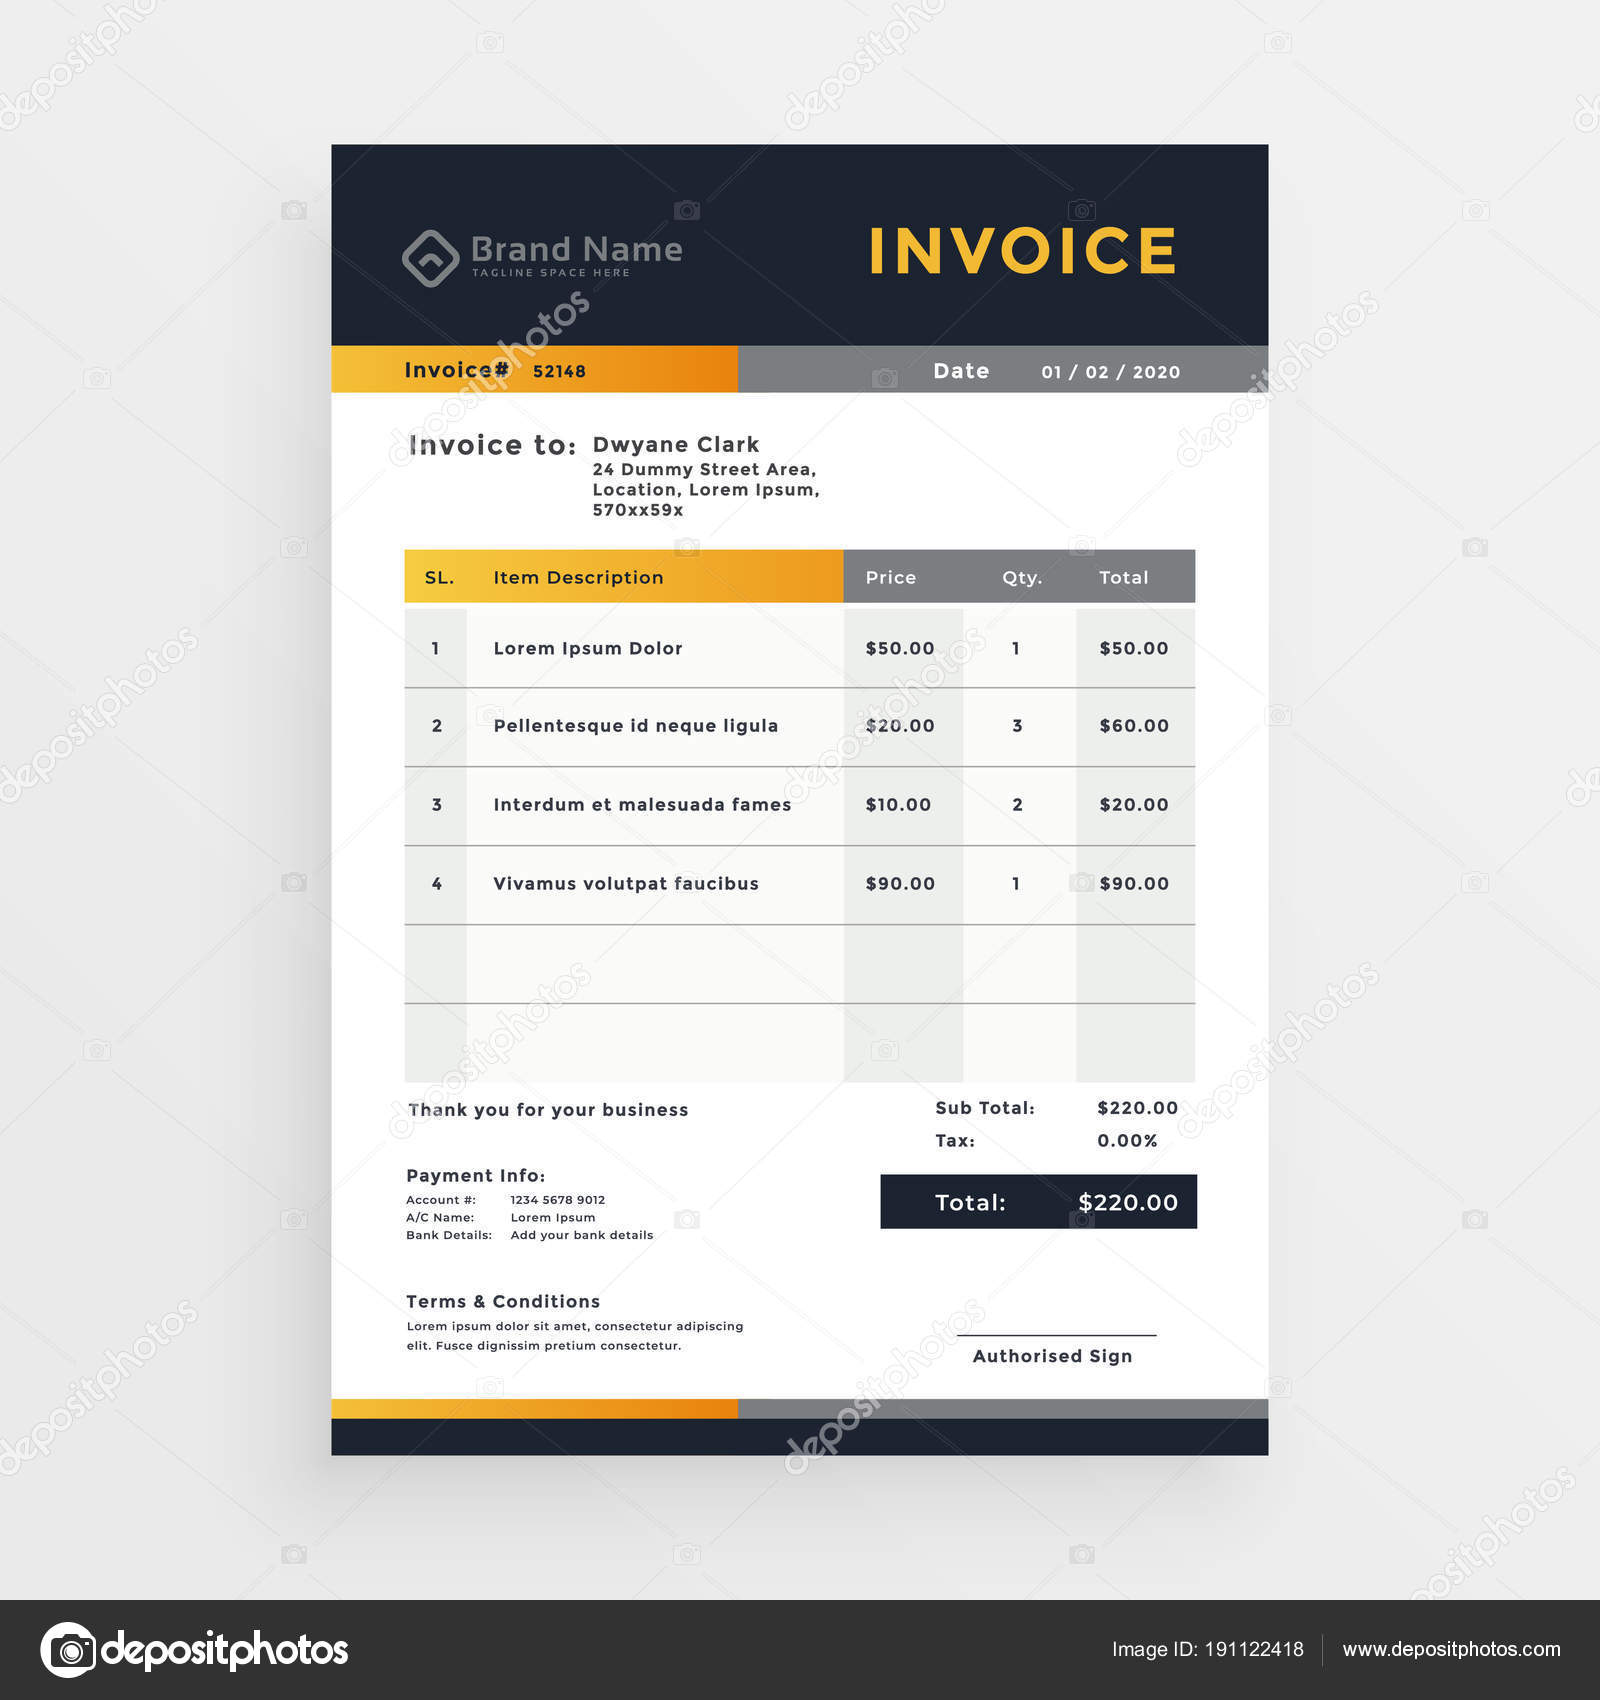 Professional Business Invoice Template Design Image Vectorielle